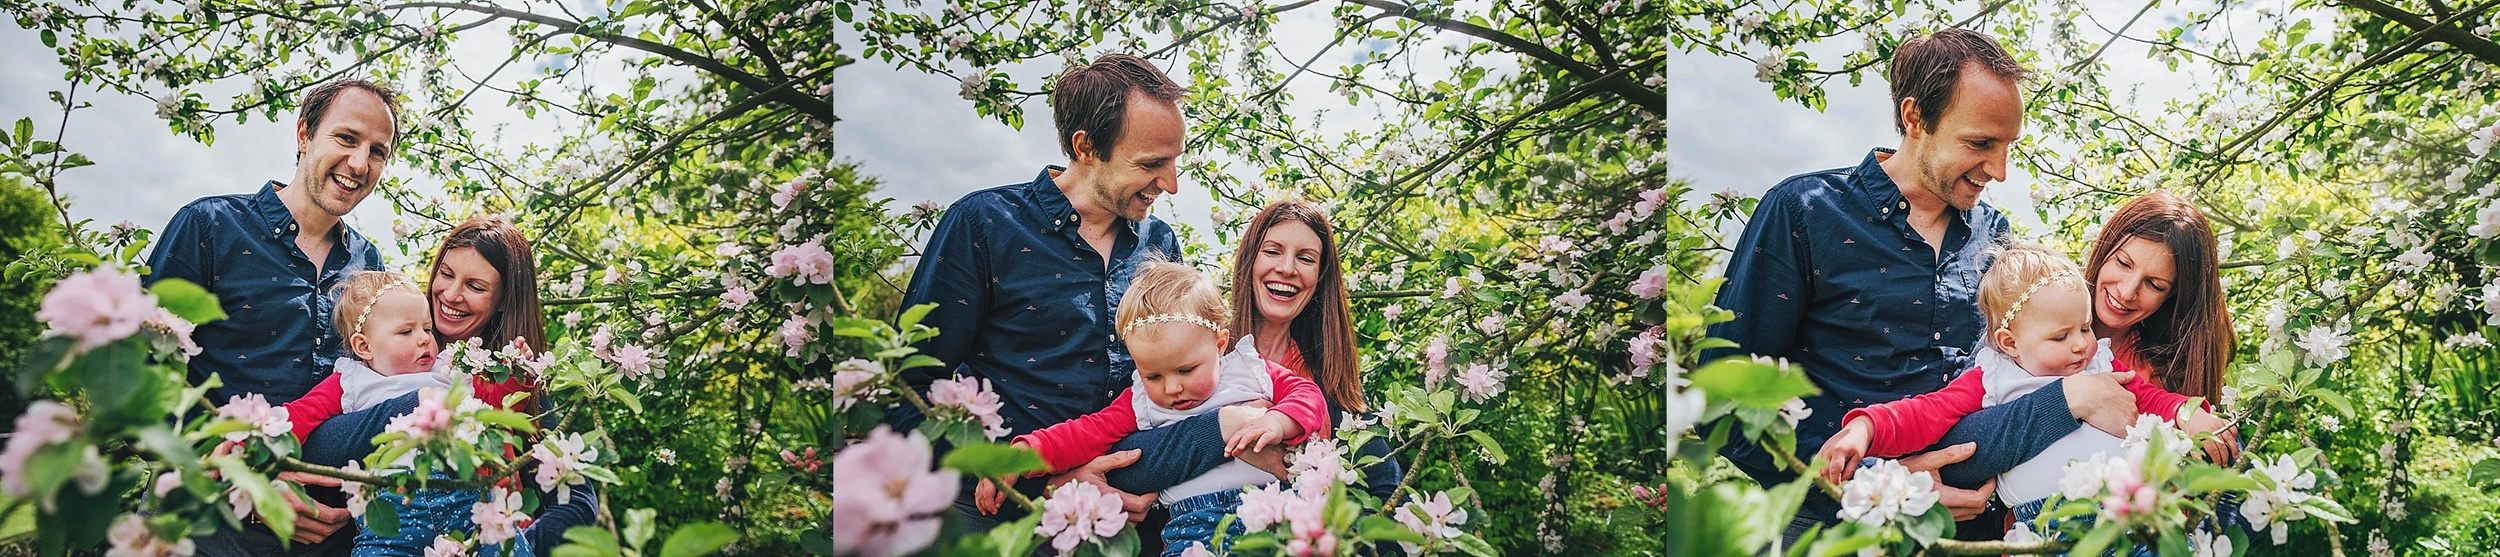 At Home Lifestyle Family Shoot for First Birthday Essex UK Documentary Portrait and Lifestyle Photographer